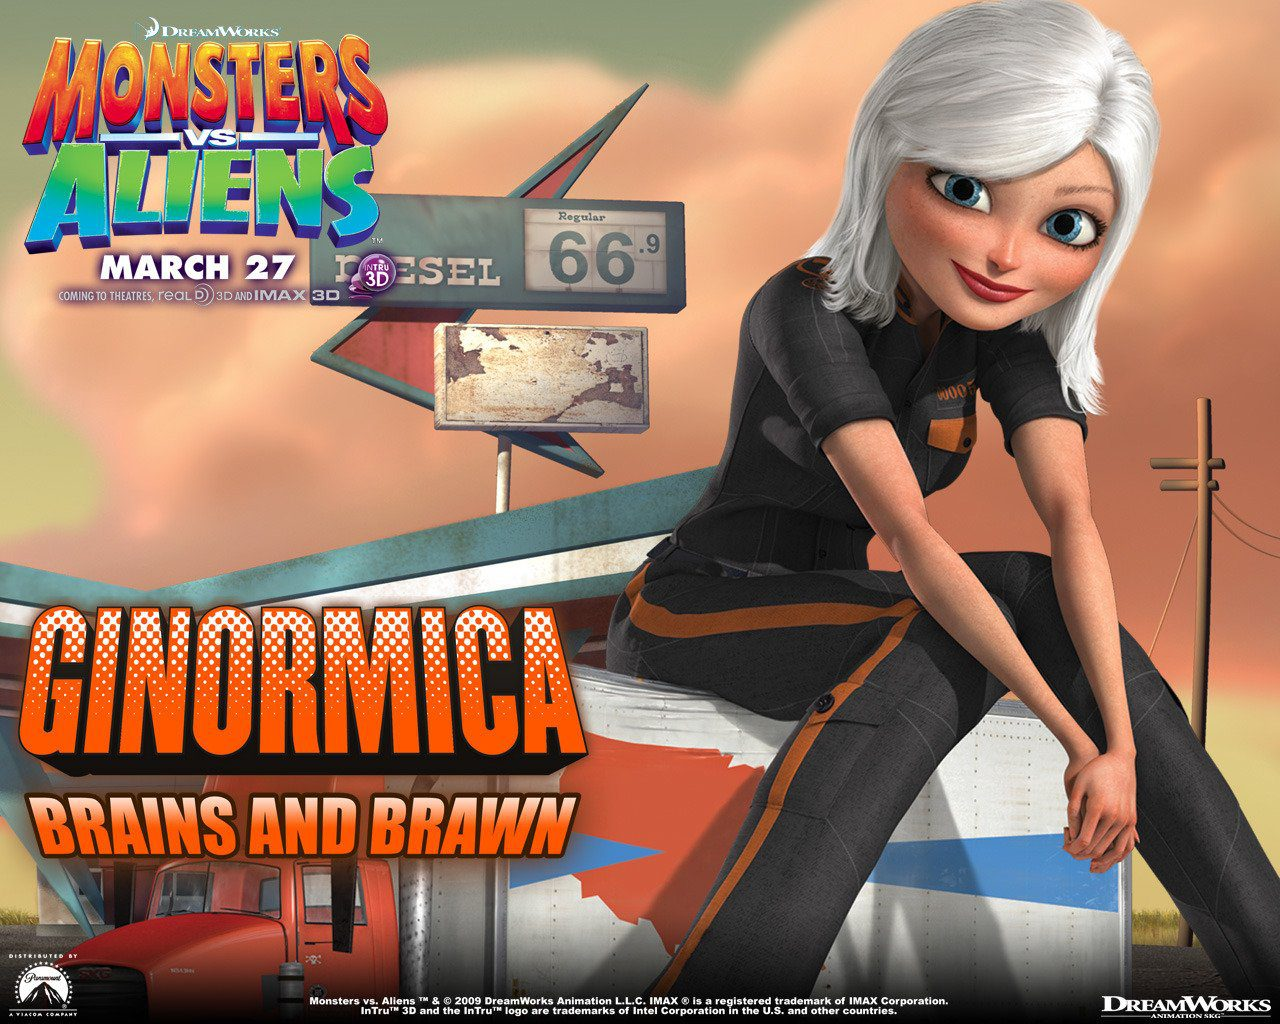 Monsters vs aliens have